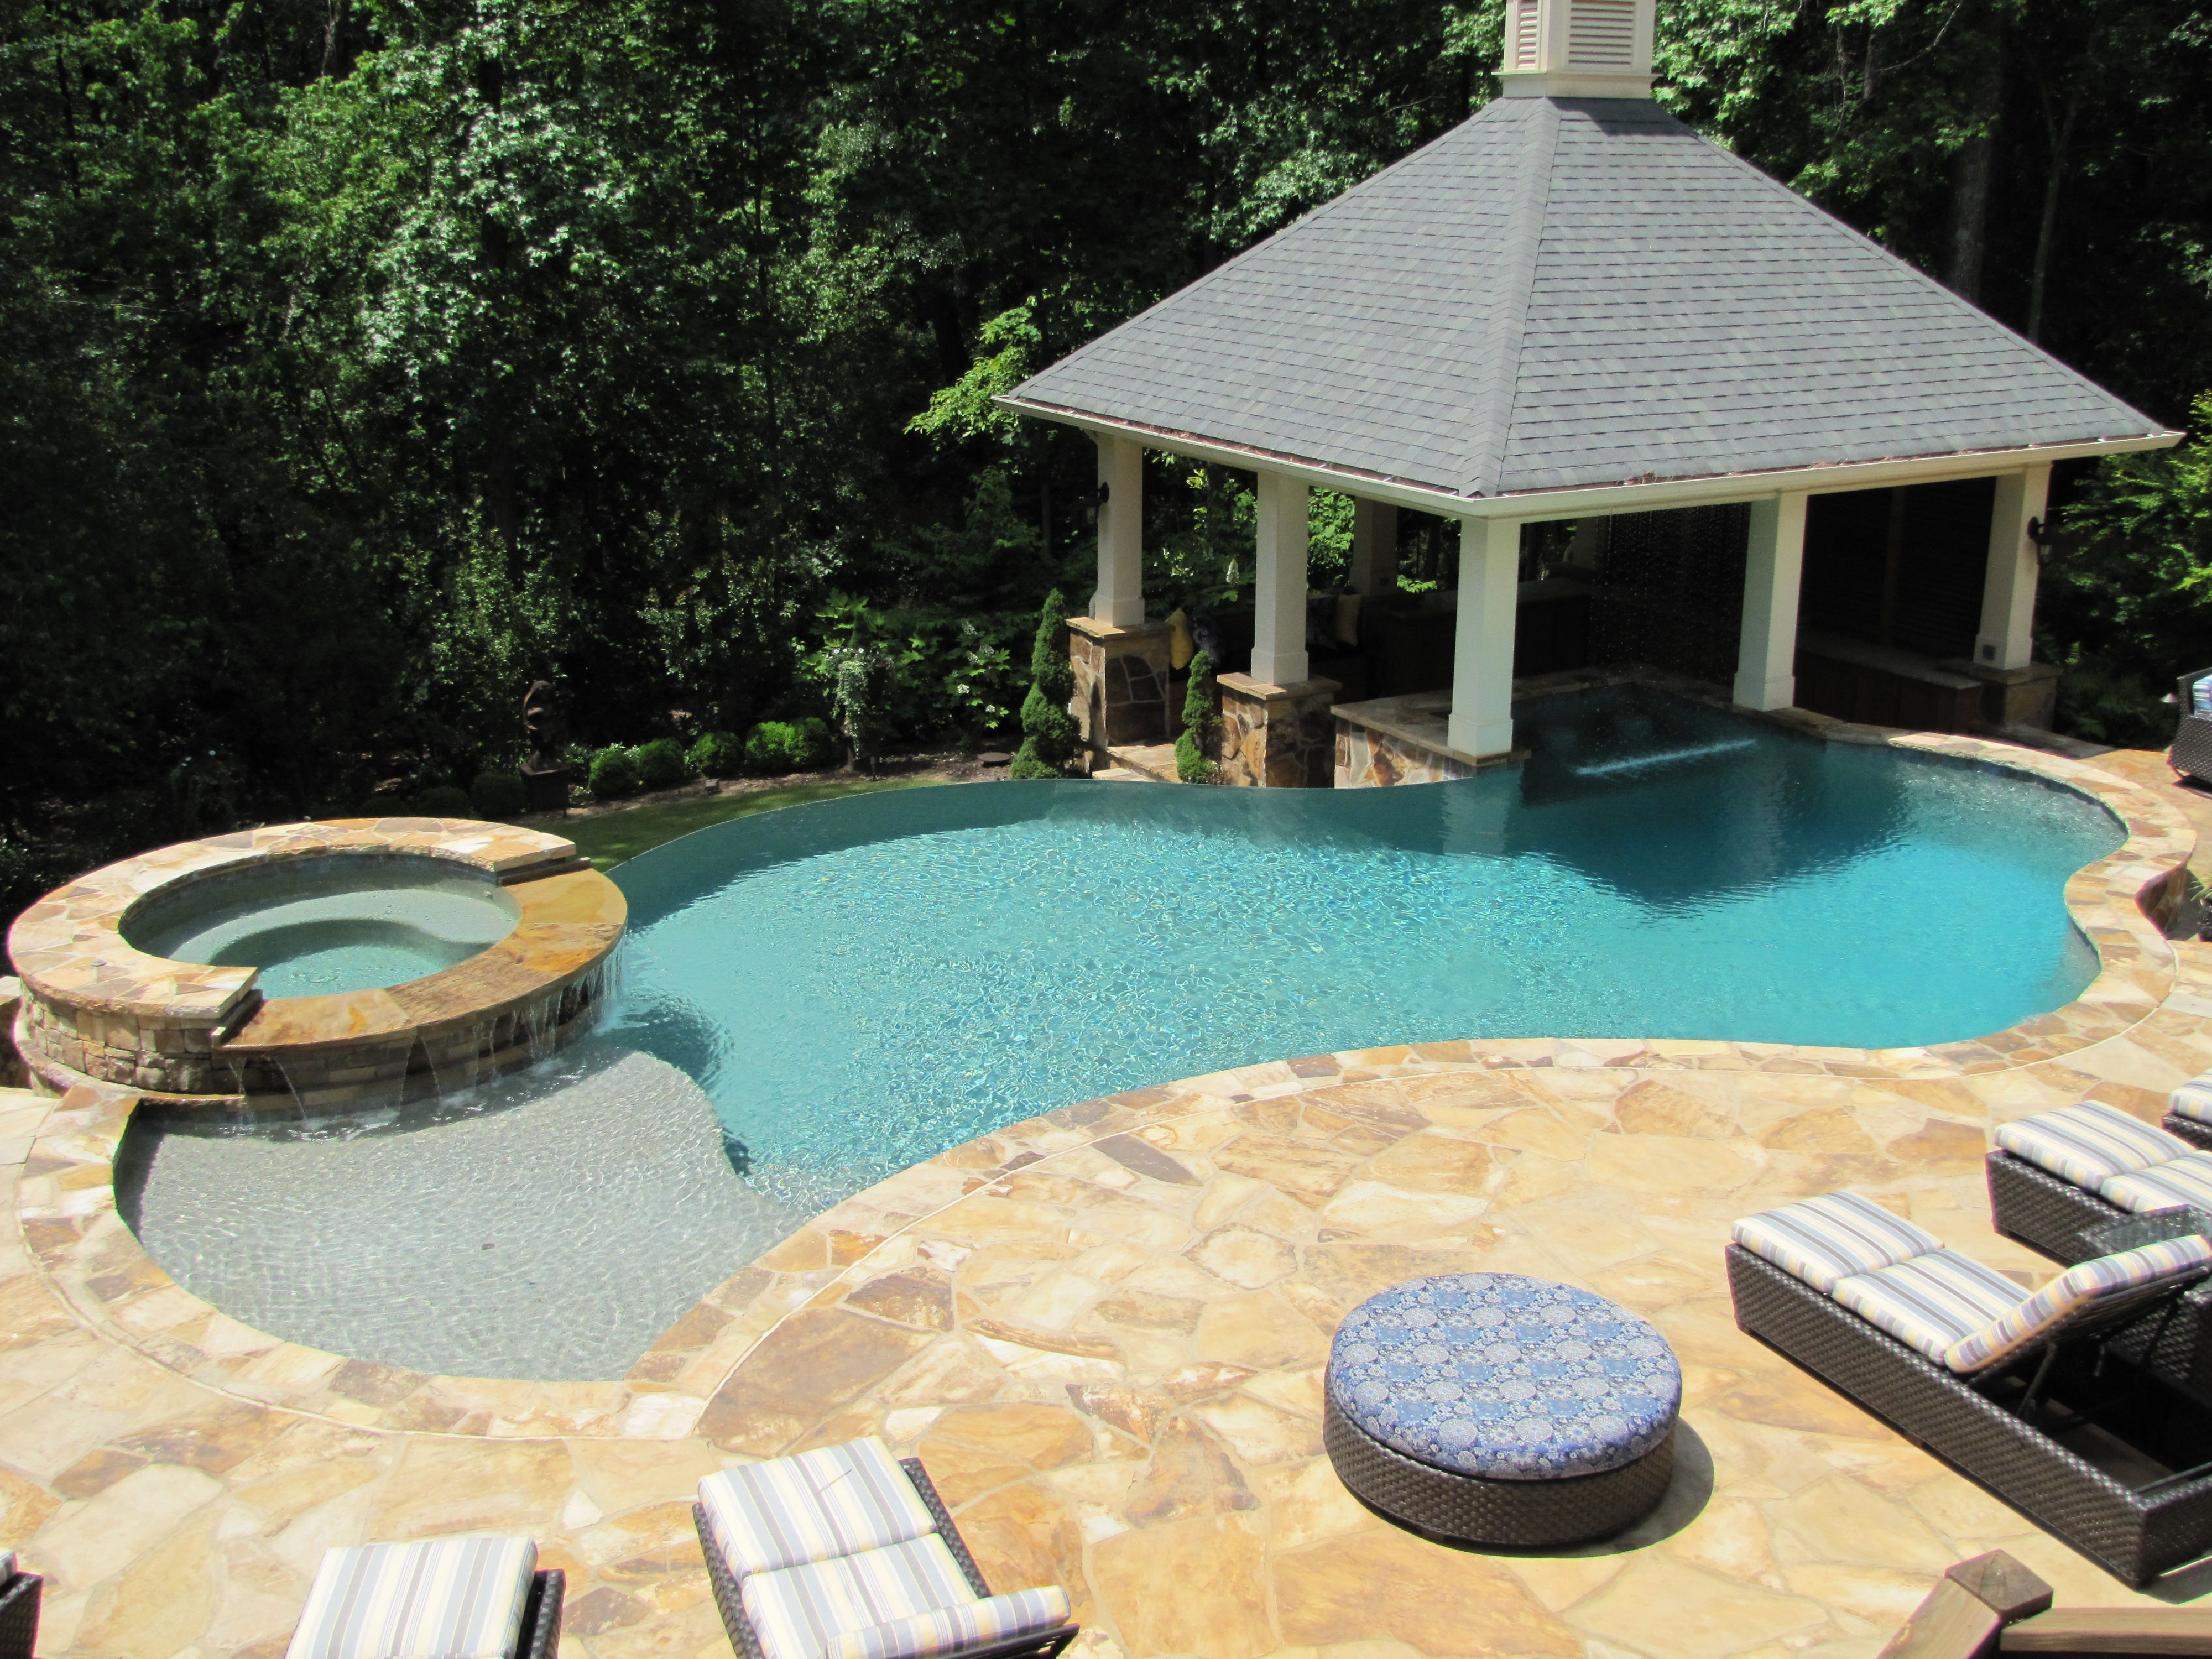 pool designs with swim up bar. Amazing Pool Set Up! Swim Up Bar, Negative Vanishing Edge And Raised Spa Area Designs With Bar